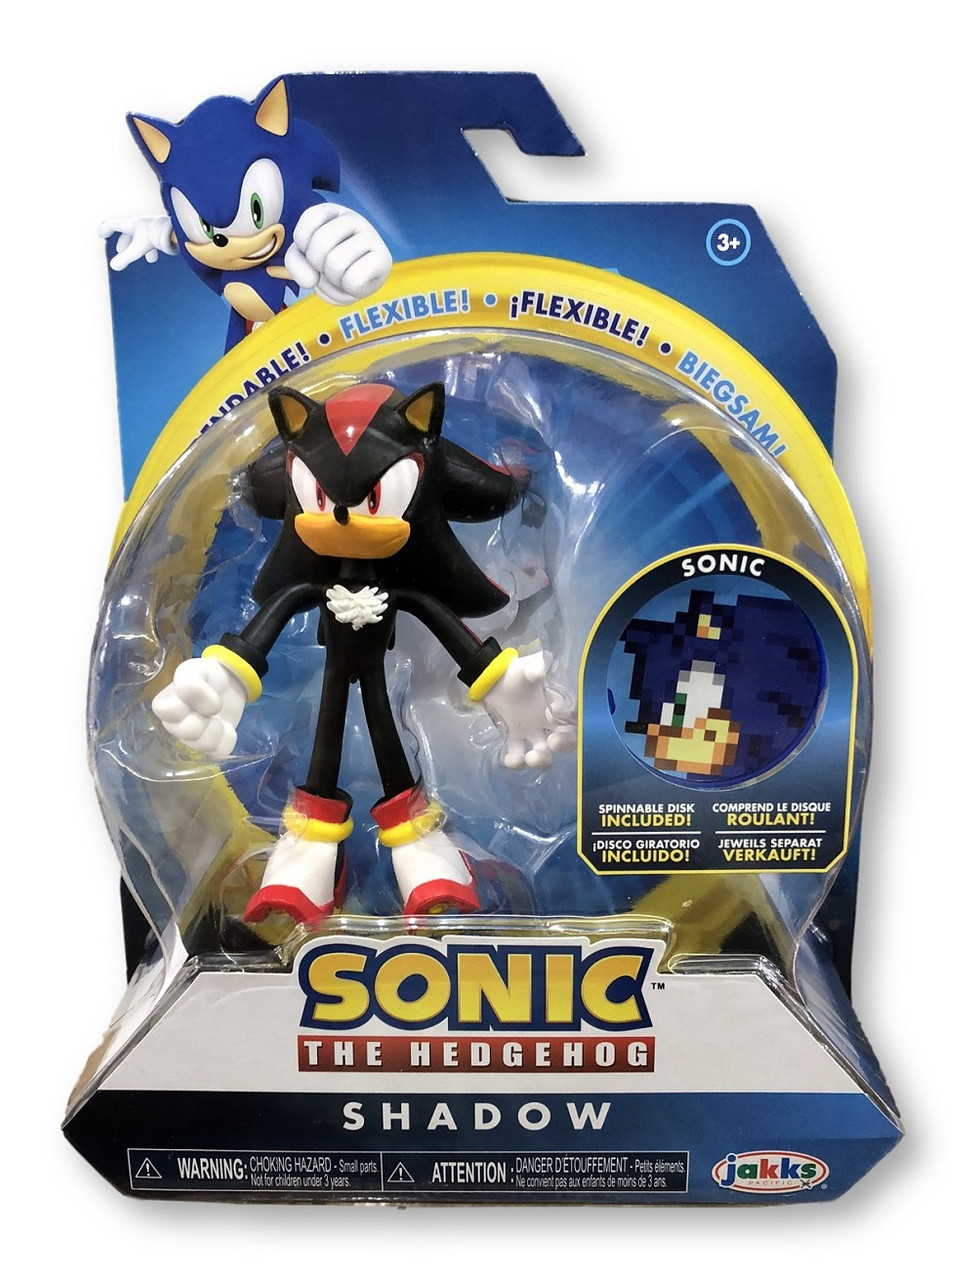 Action Figure - Sonic the Hedgehog - Shadow - 4 Inch - Wave 1